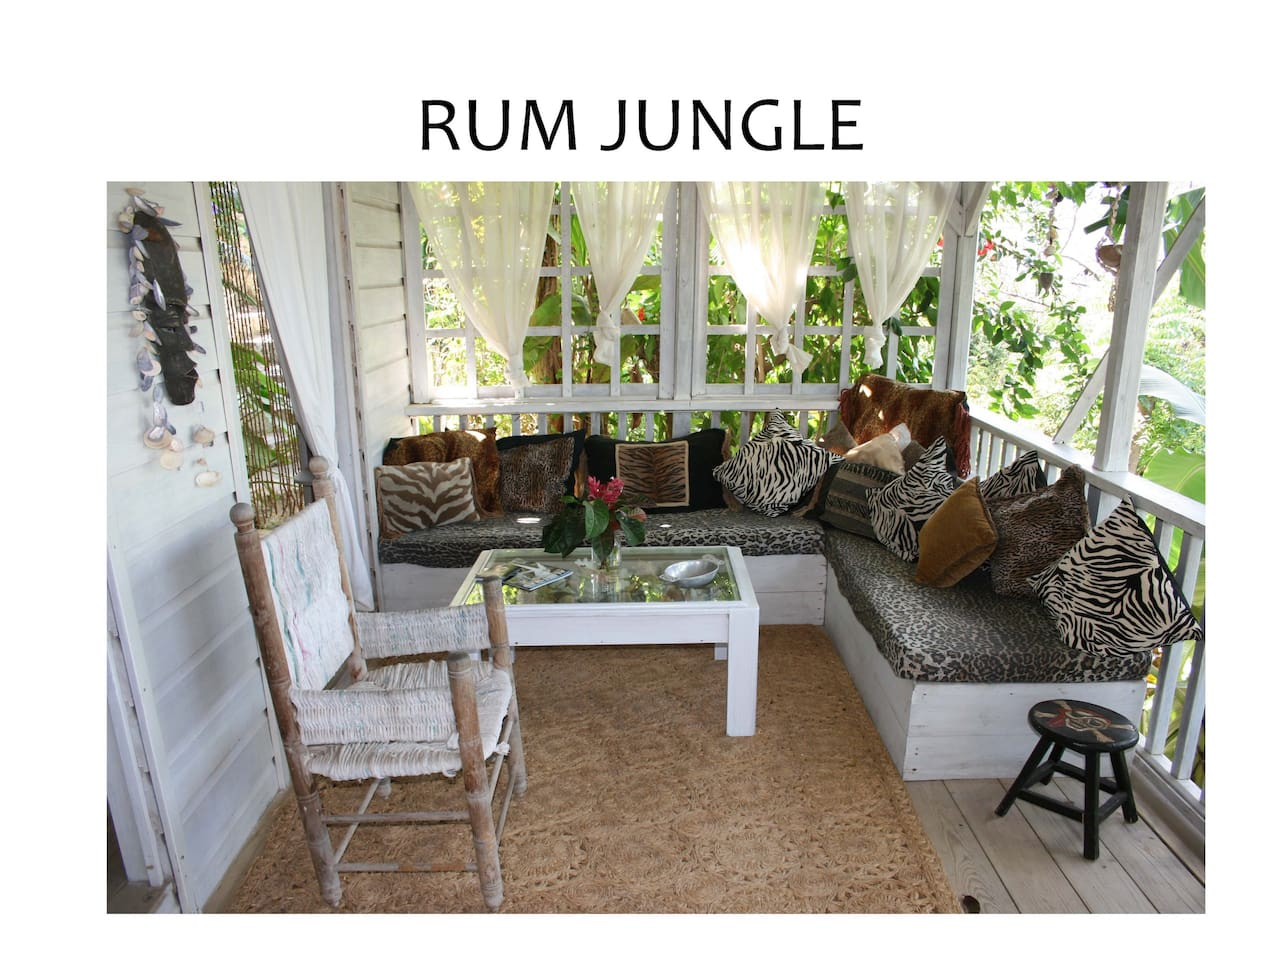 Rum jungle   english harbour   villas for rent in falmouth